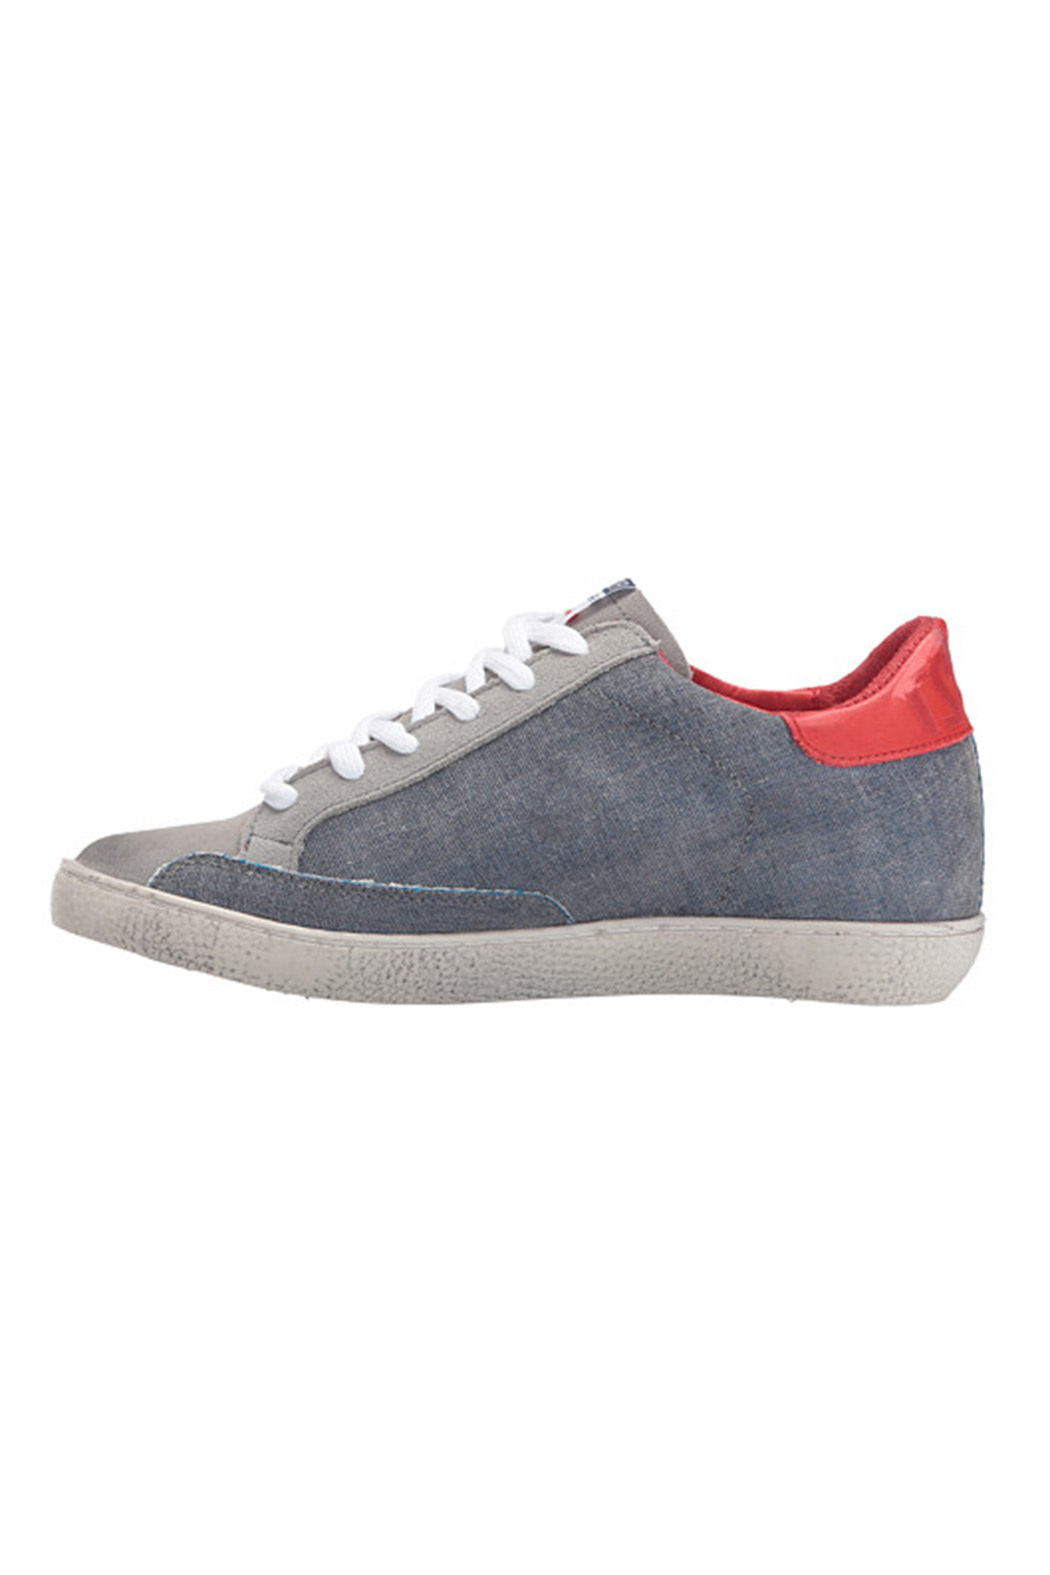 Freebird by Steven Steven Low Top Sneakers - Front Full Image